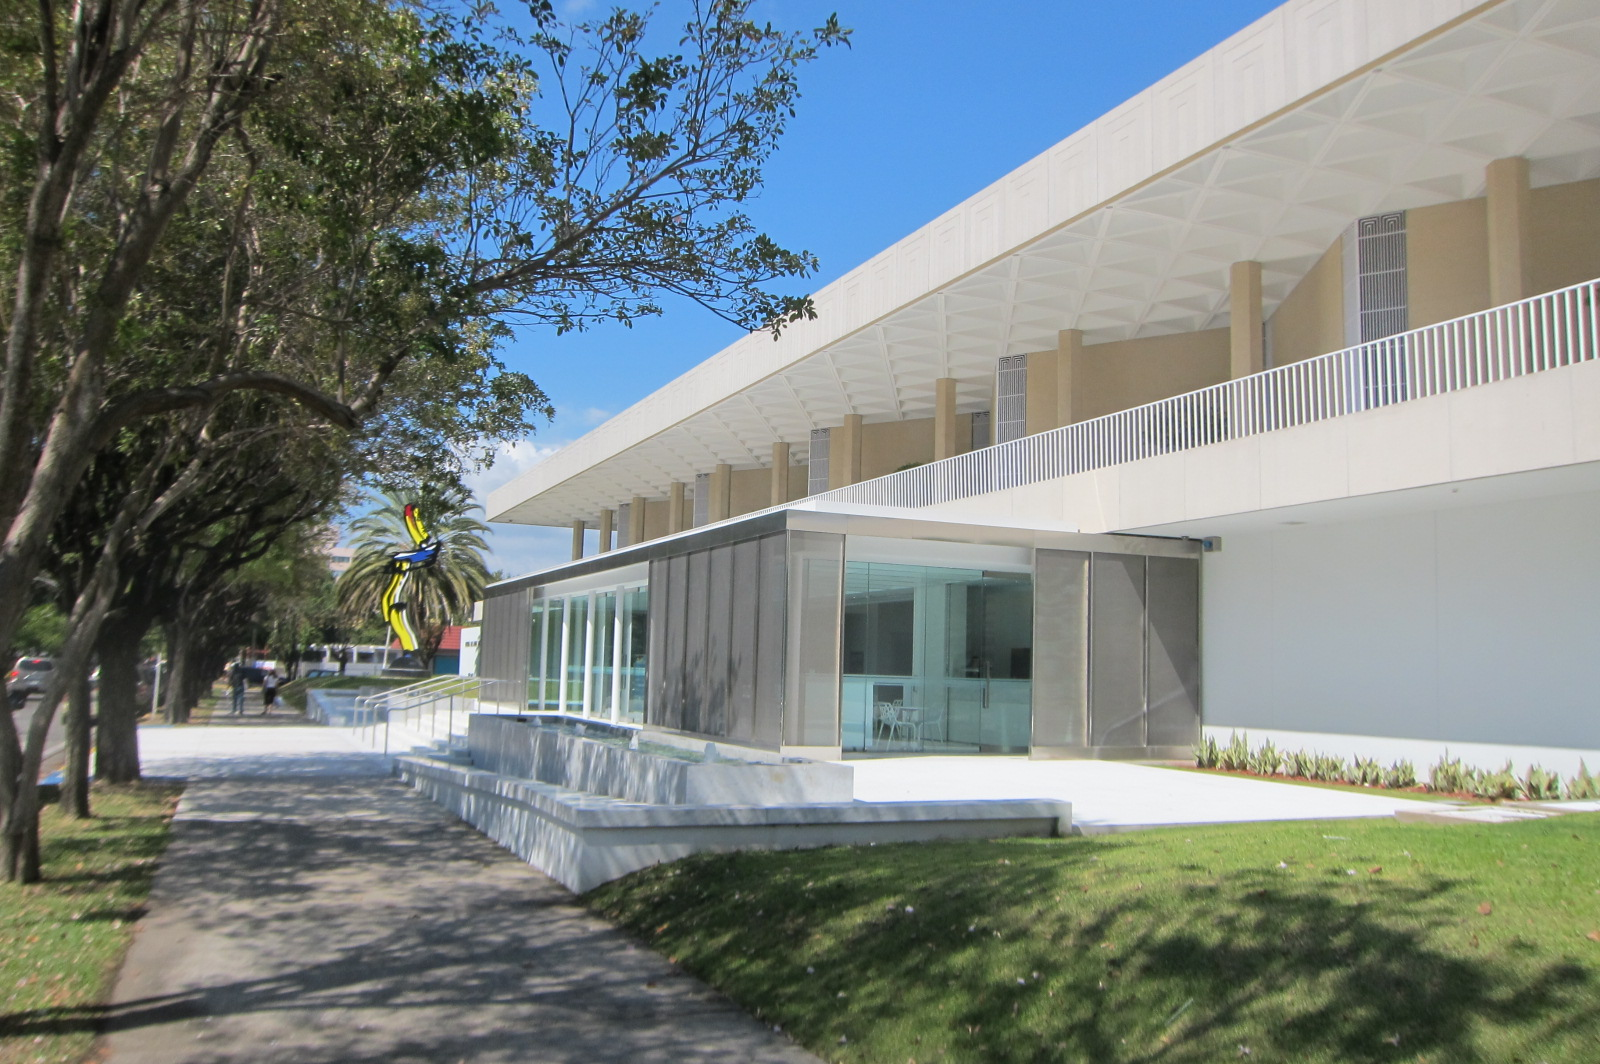 The Ponce Museum Of Art, Designed By Edward Durell Stone, Was Originally  Built In 1965 And Renovated In 2010. The Original Museum Is Reminiscent Of  The ...